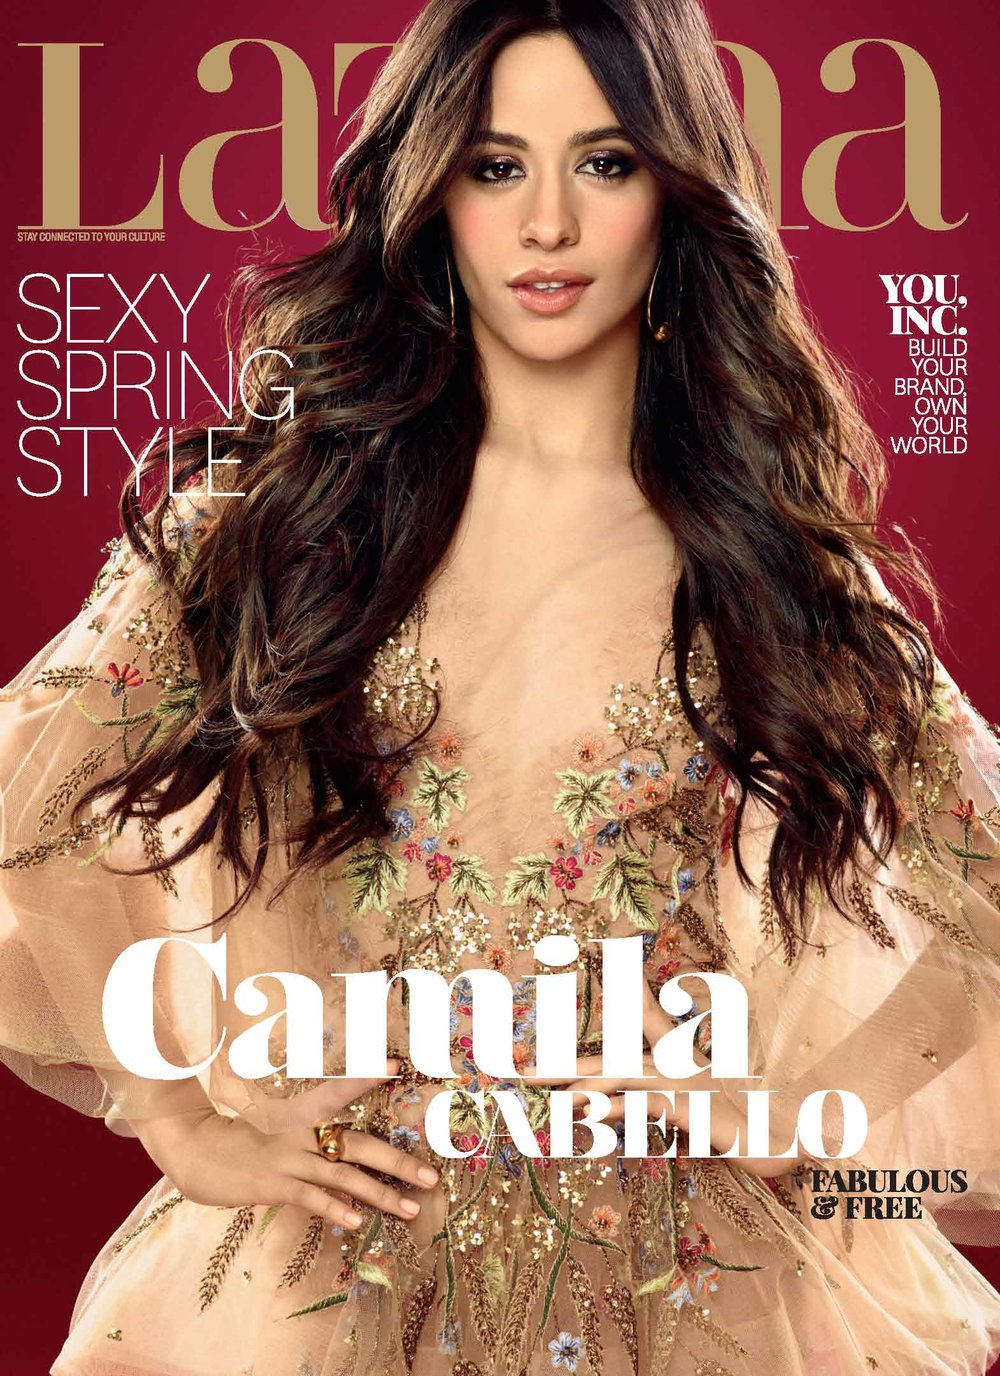 LATINA cover April 2017.jpg